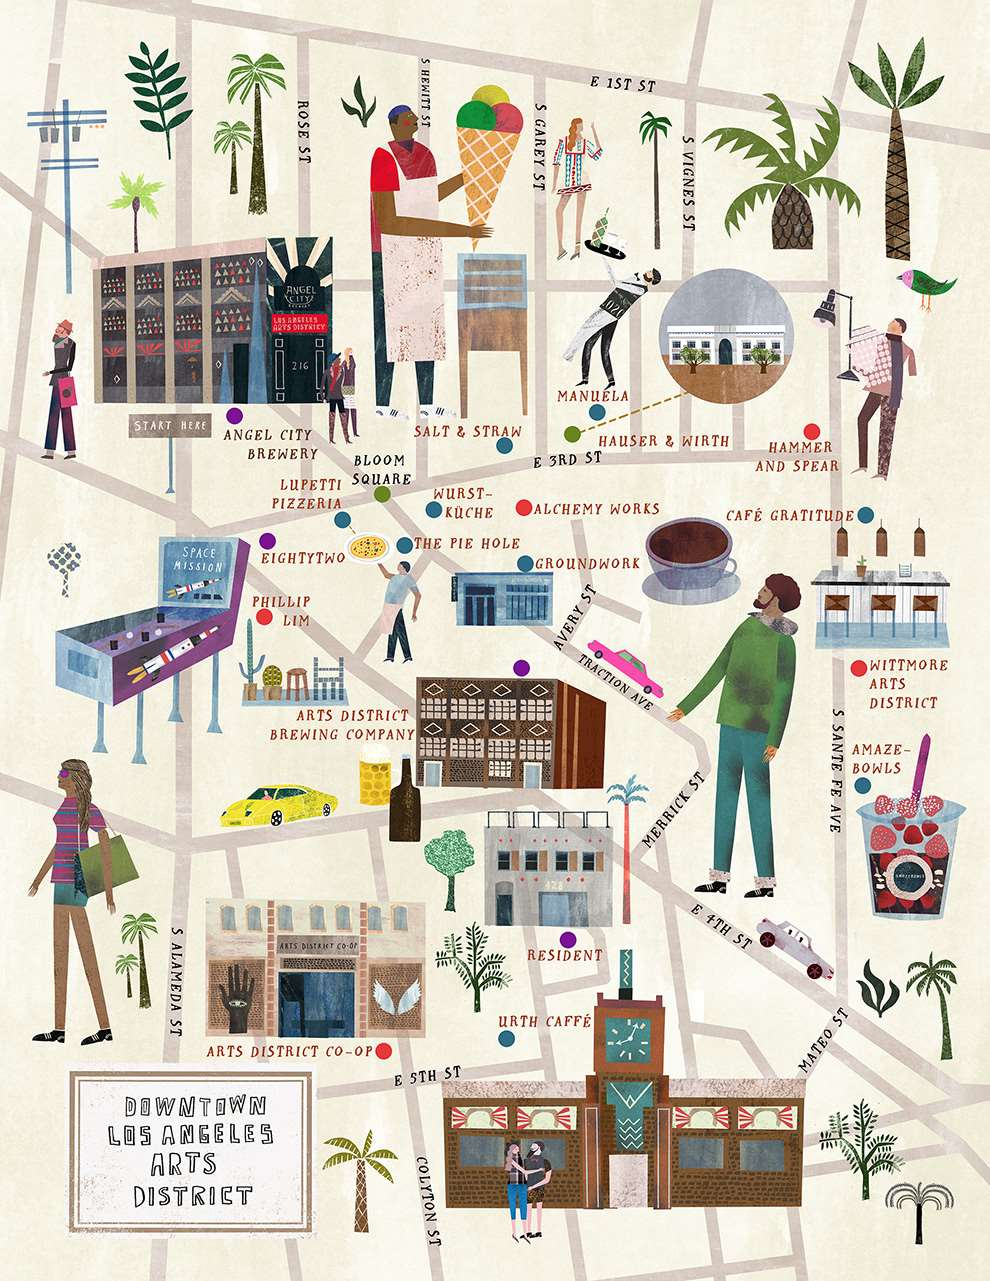 Martin Haake, Mix media layered map illustration of downtown Los Angeles Art District.